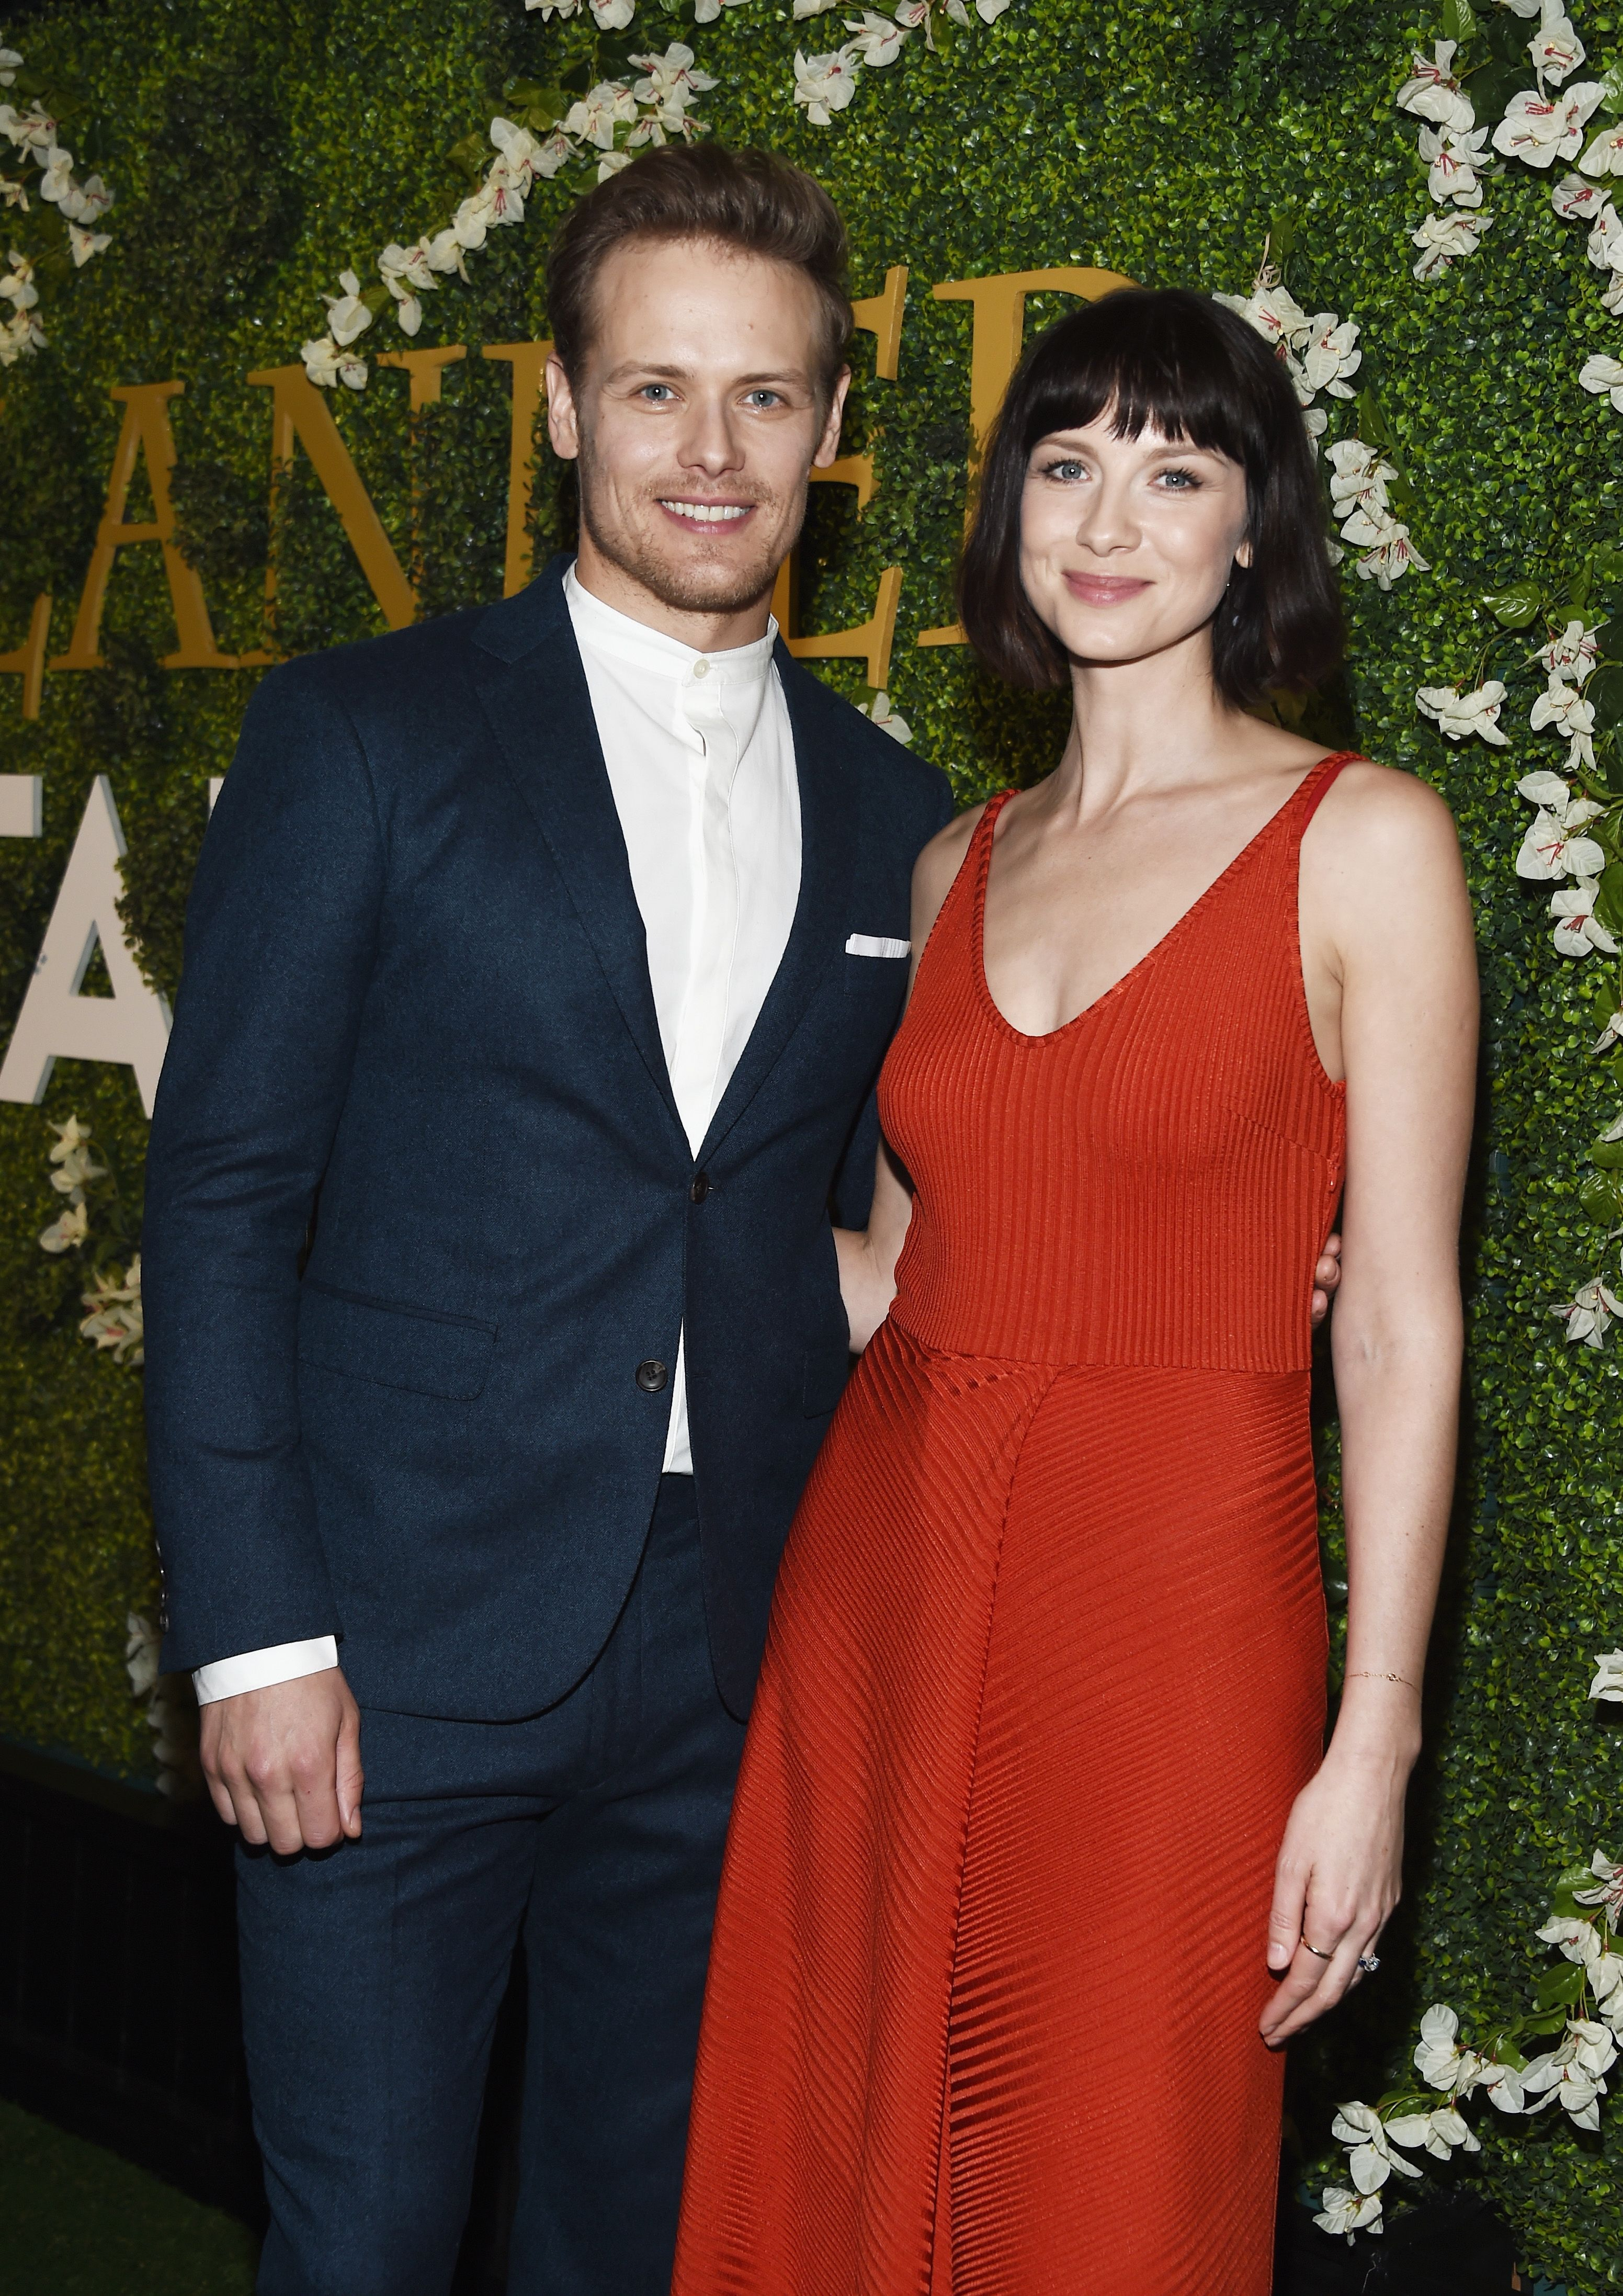 Are outlander cast dating each other